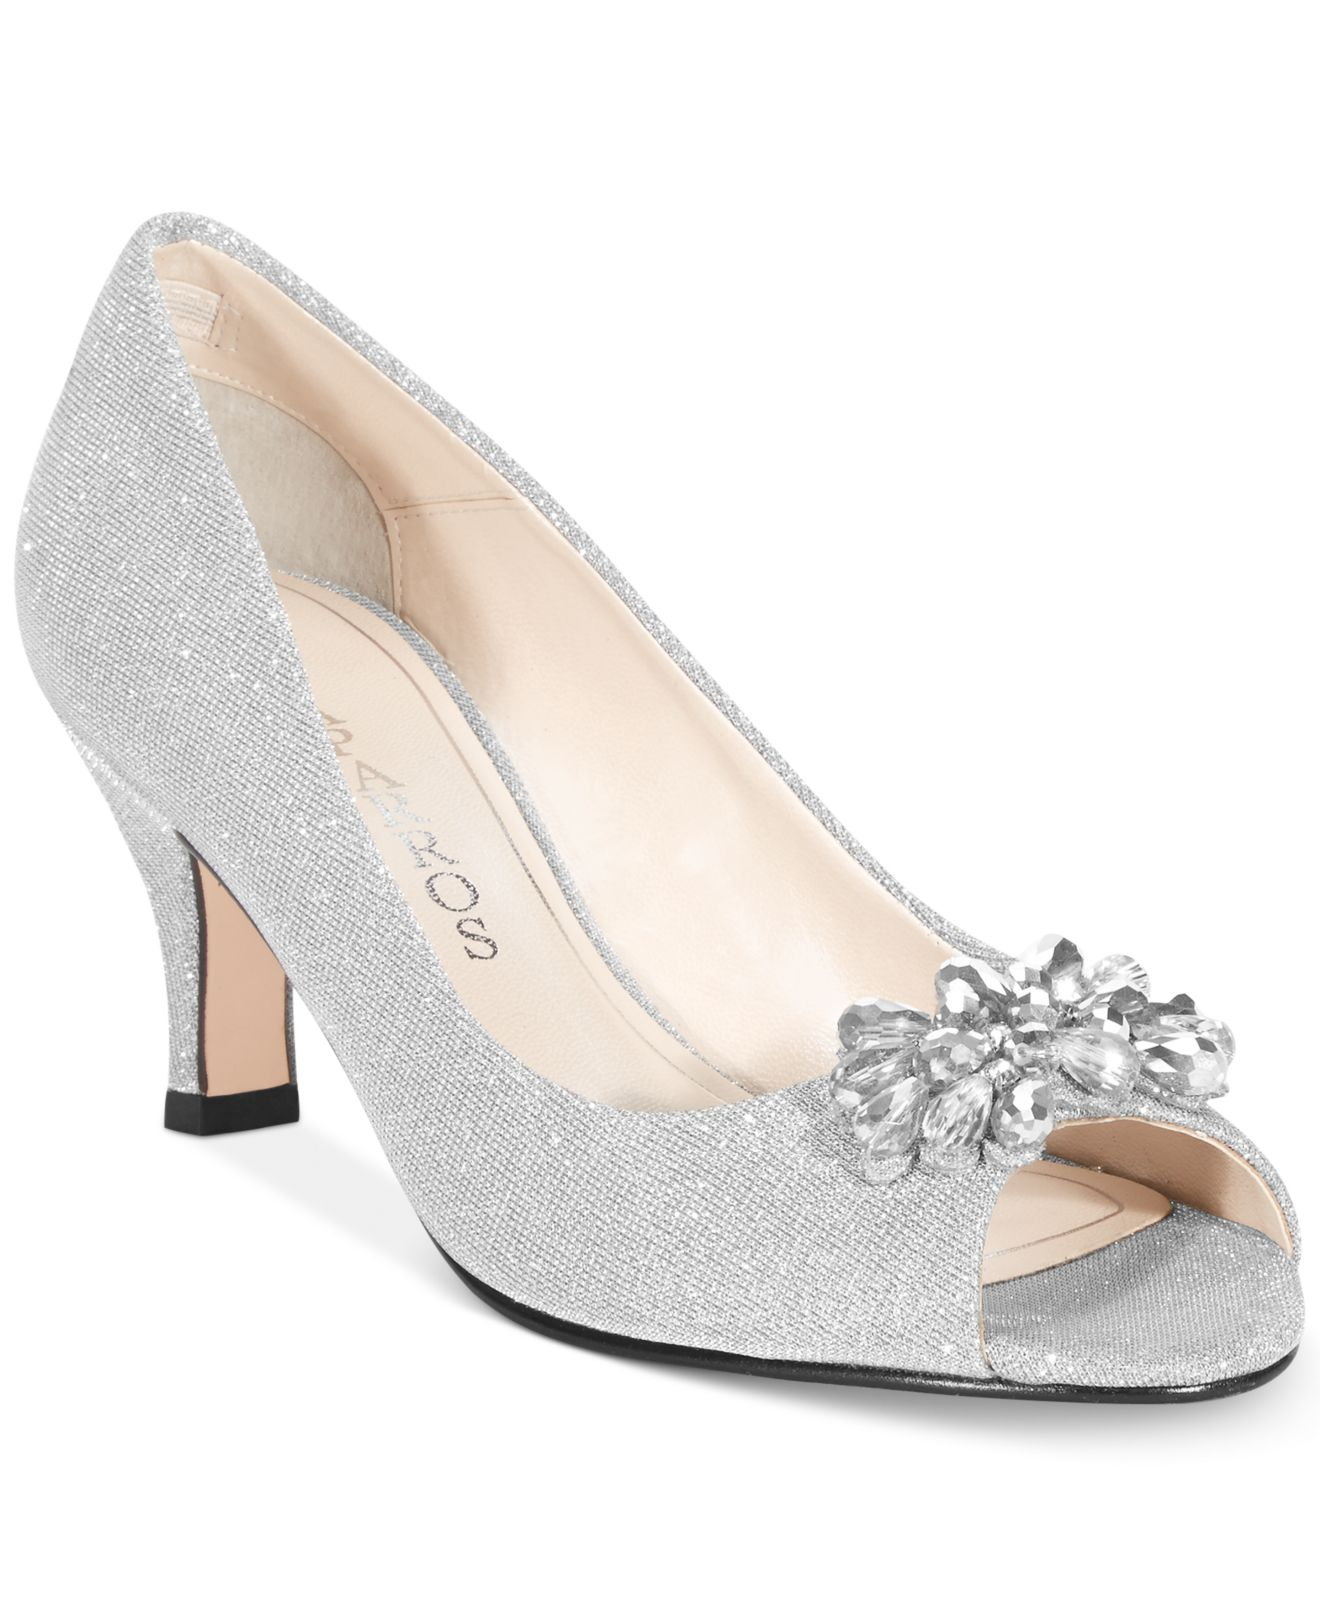 659d04e3727 Lyst - Caparros Marissa Evening Pumps in Metallic